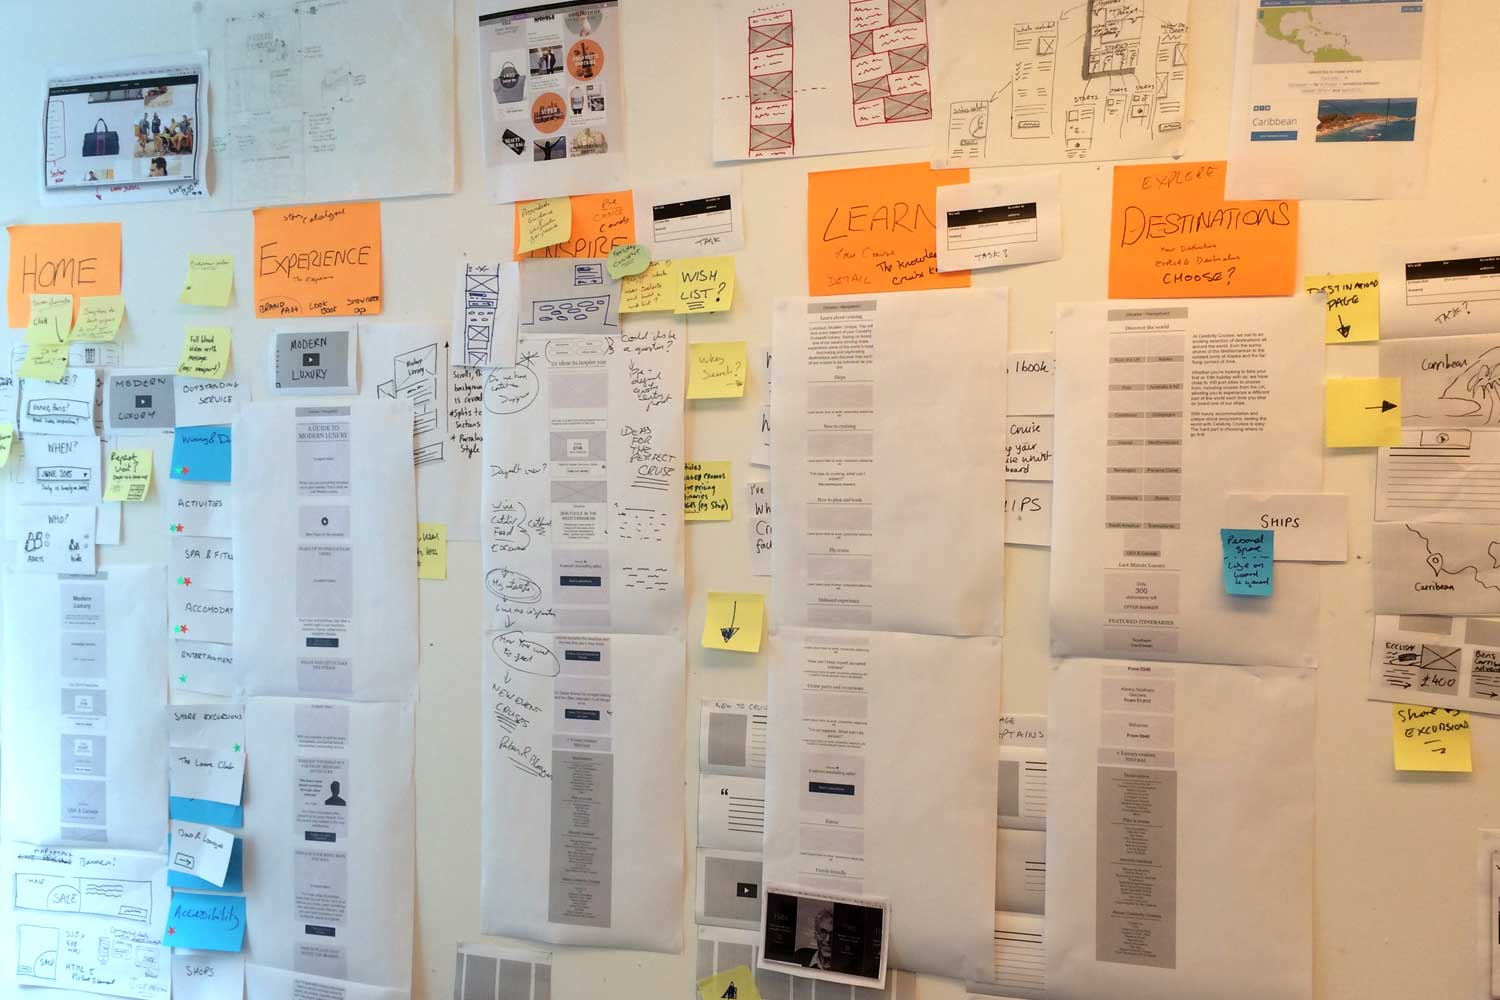 Starting as broadly possible, we attack the project from all angles, building up the solution in layers.